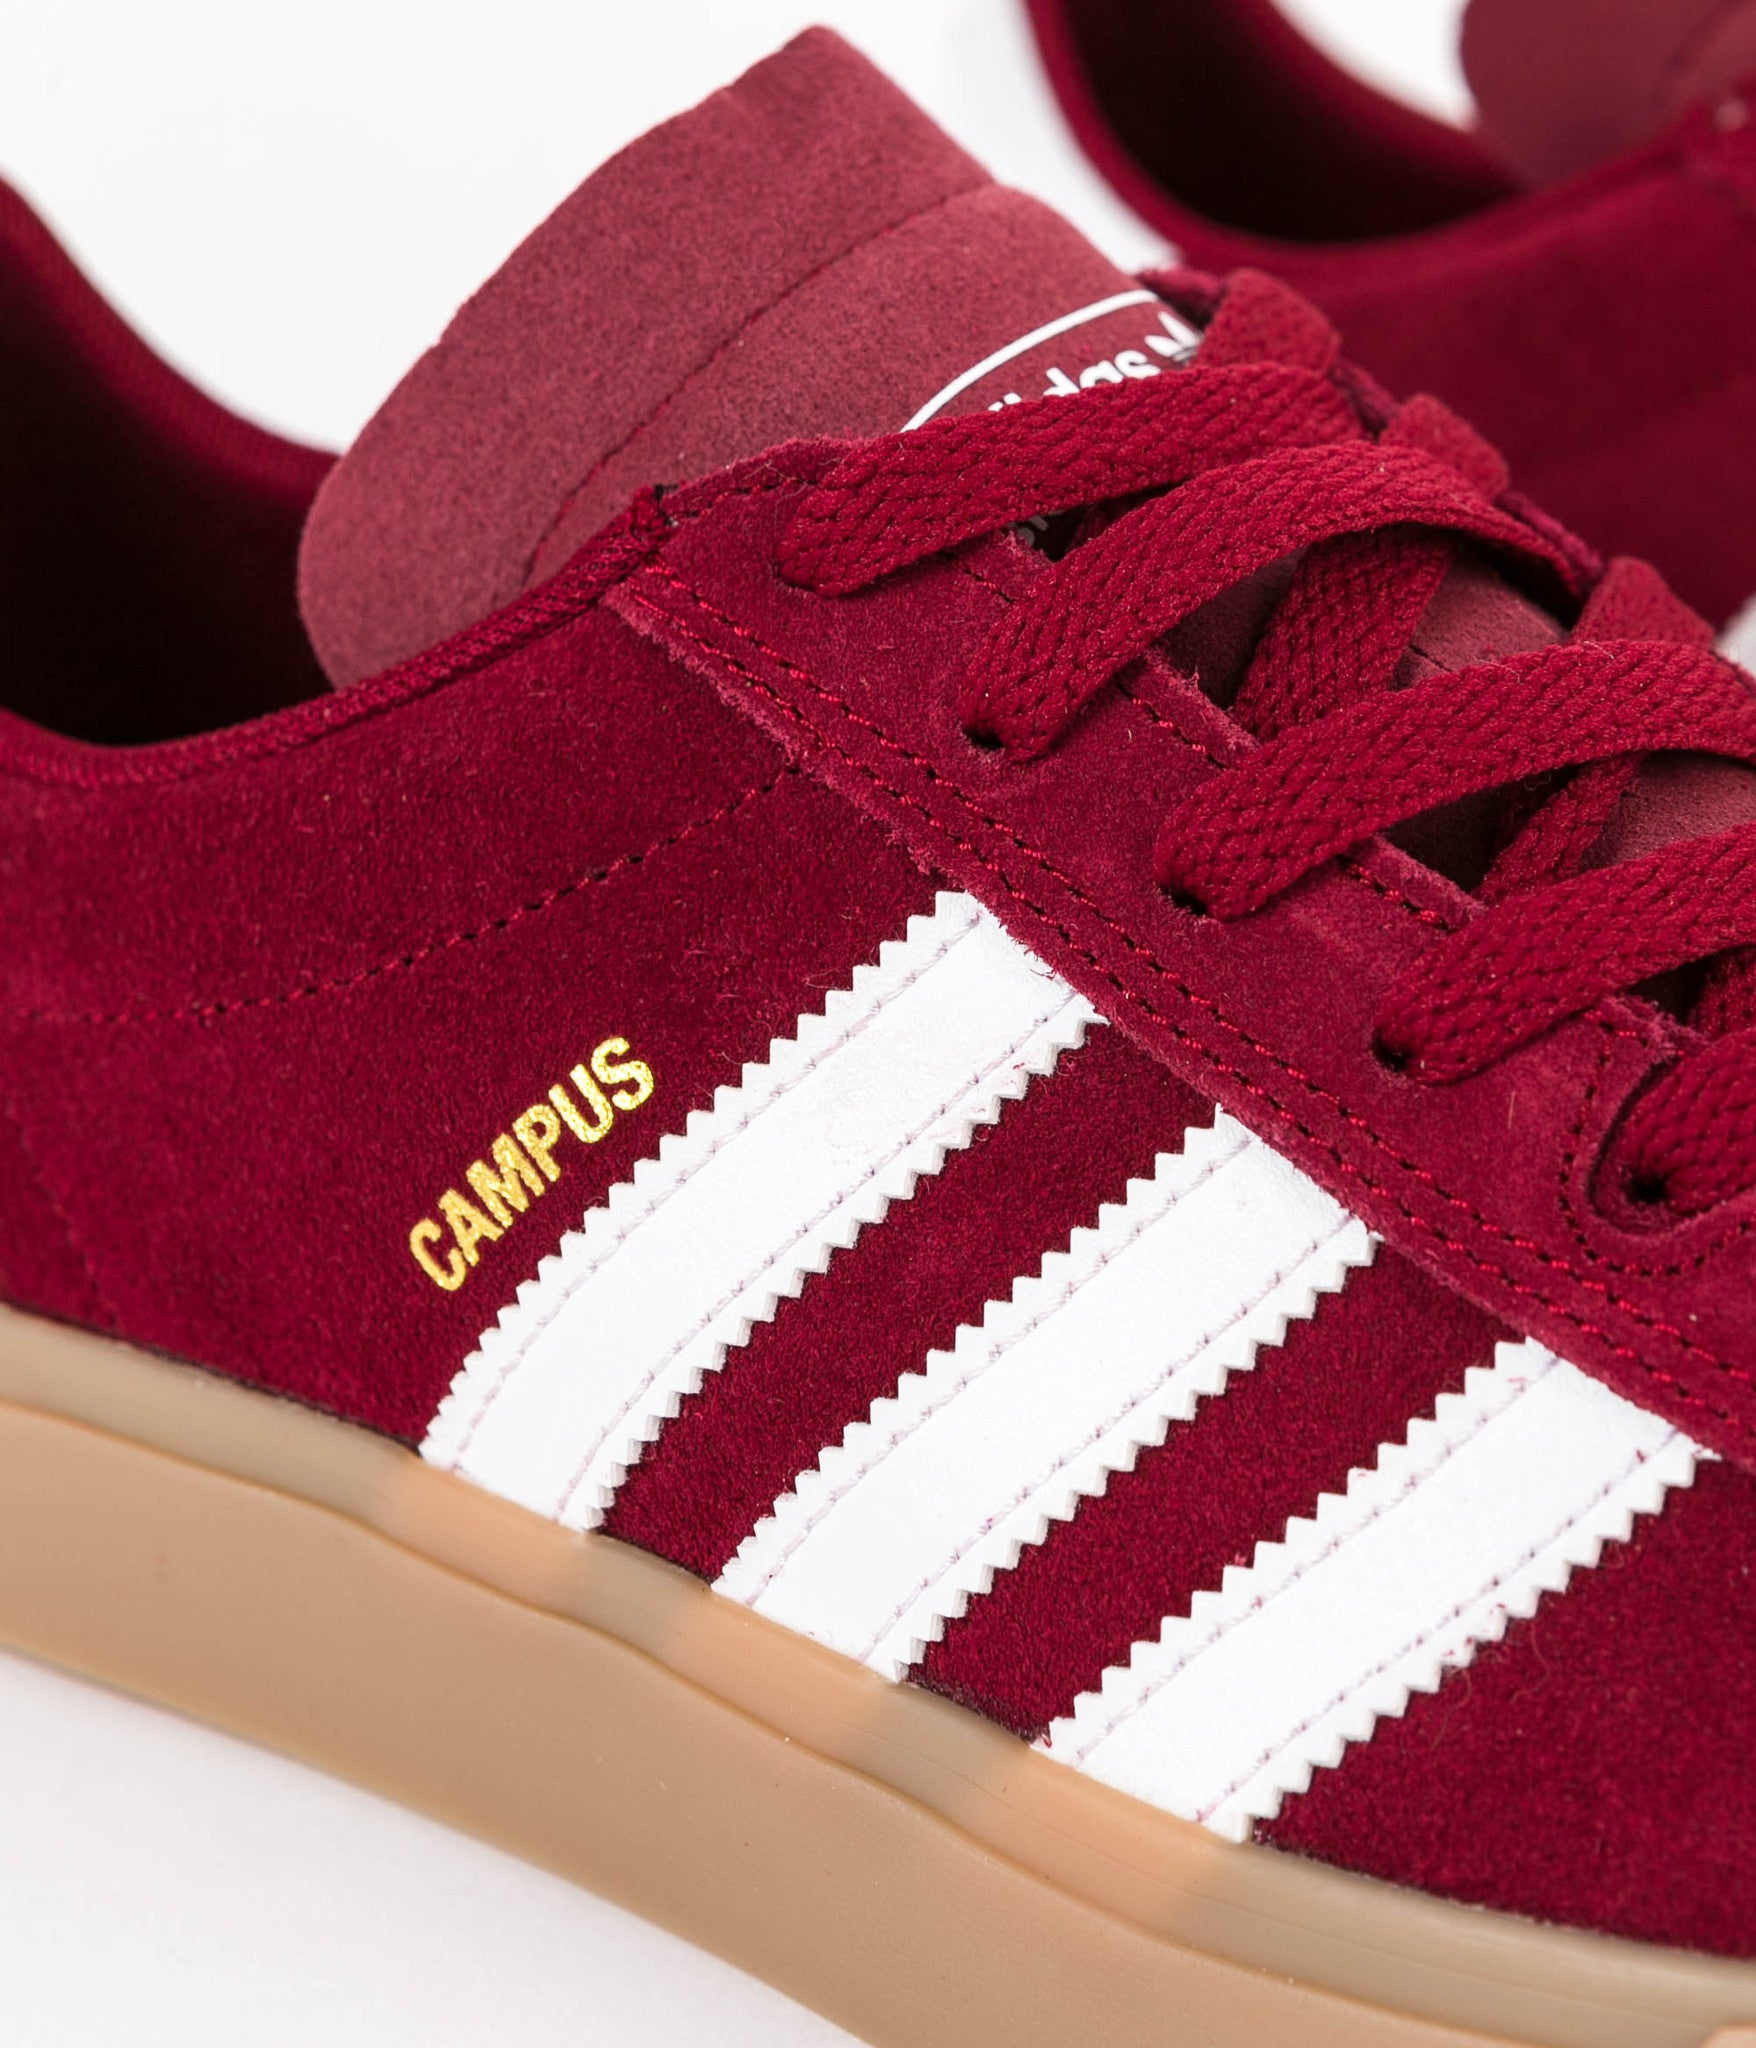 huge selection of 81fdf 1df91 ... Adidas Campus Vulc II Adv Shoes - Collegiate Burgundy  White  Gum4 ...